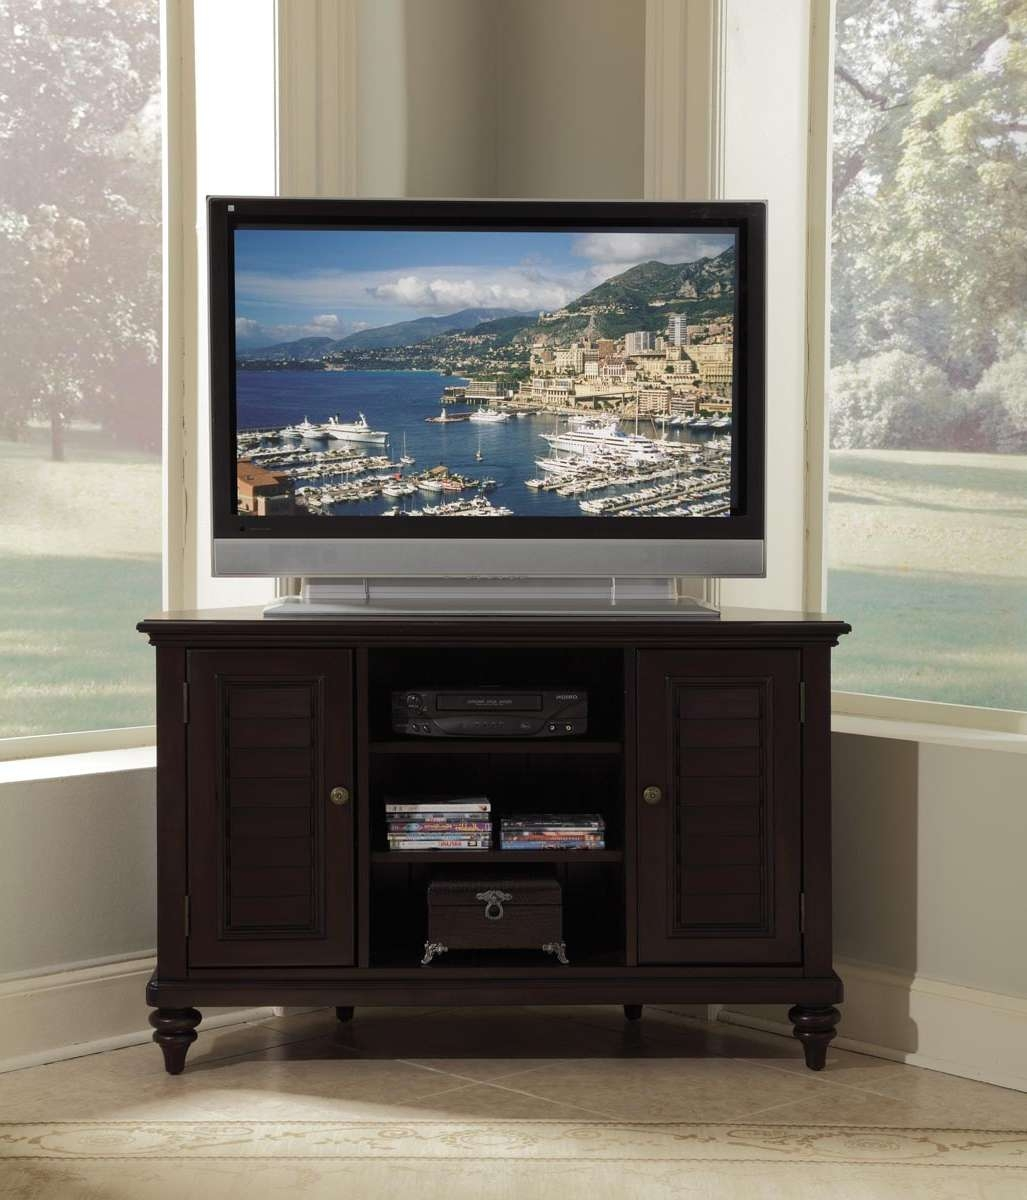 Tv Stand With Rounded Corners – Round Designs Within Tv Stands With Rounded Corners (View 5 of 15)